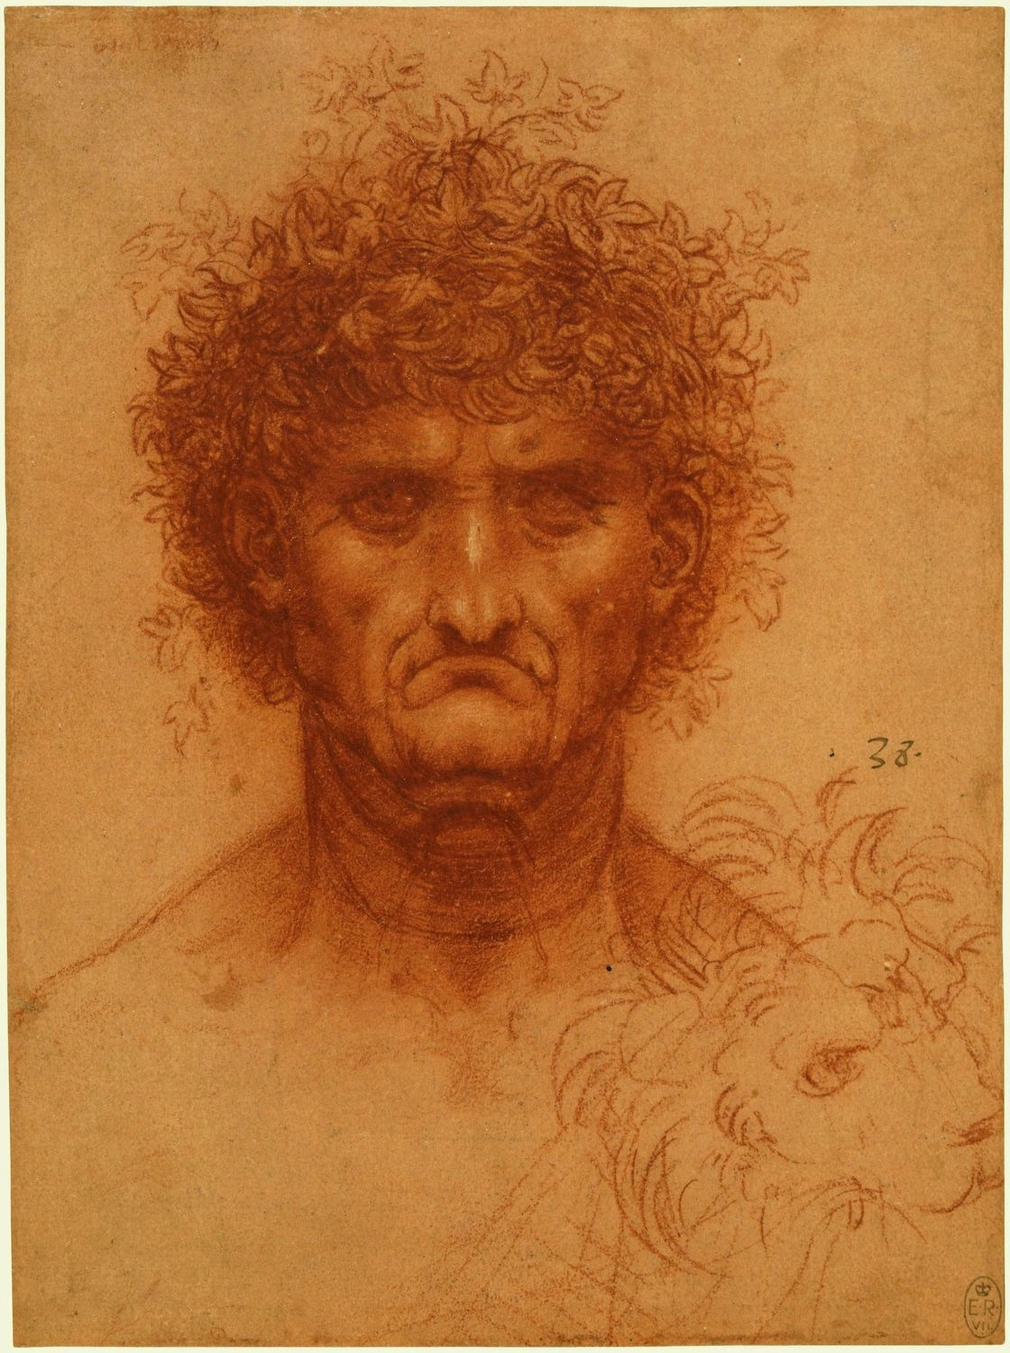 A drawing of the head of a clean-shaven man, facing the viewer. He has a down-turned mouth and a mass of curly hair interspersed with leaves (Hedera helix). In the top left corner is some illegible writing, and below, to the right, a lion's head is lightl